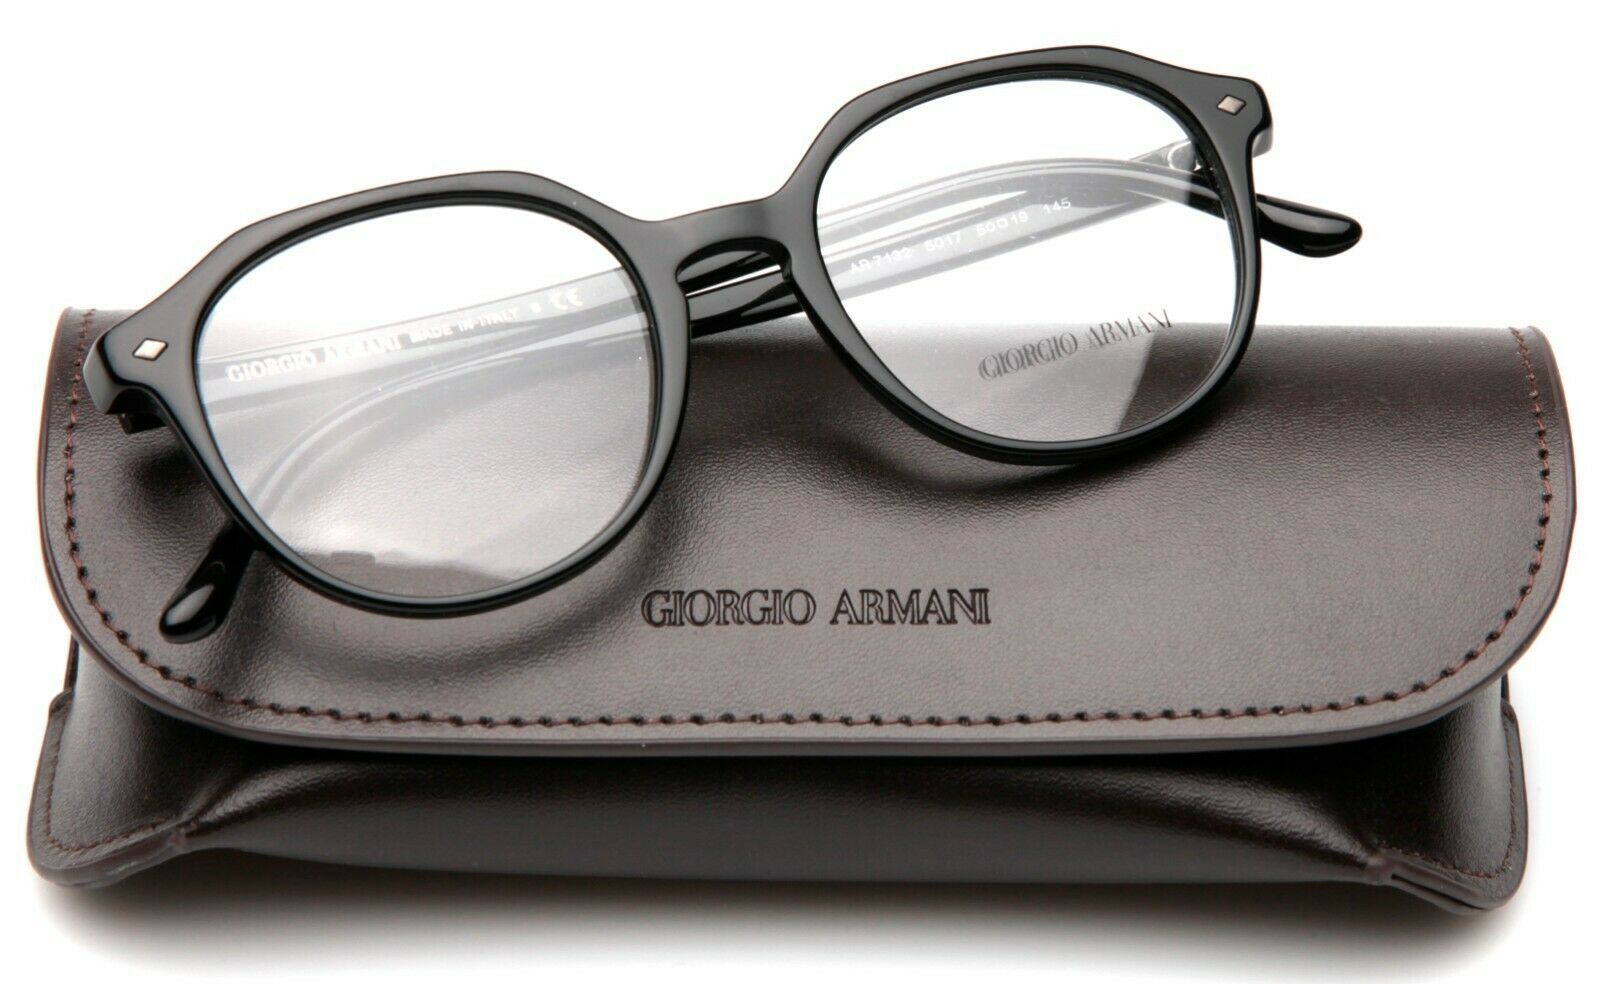 Primary image for NEW GIORGIO ARMANI AR 7132 5017 BLACK EYEGLASSES FRAME 50-19-145mm B44mm Italy